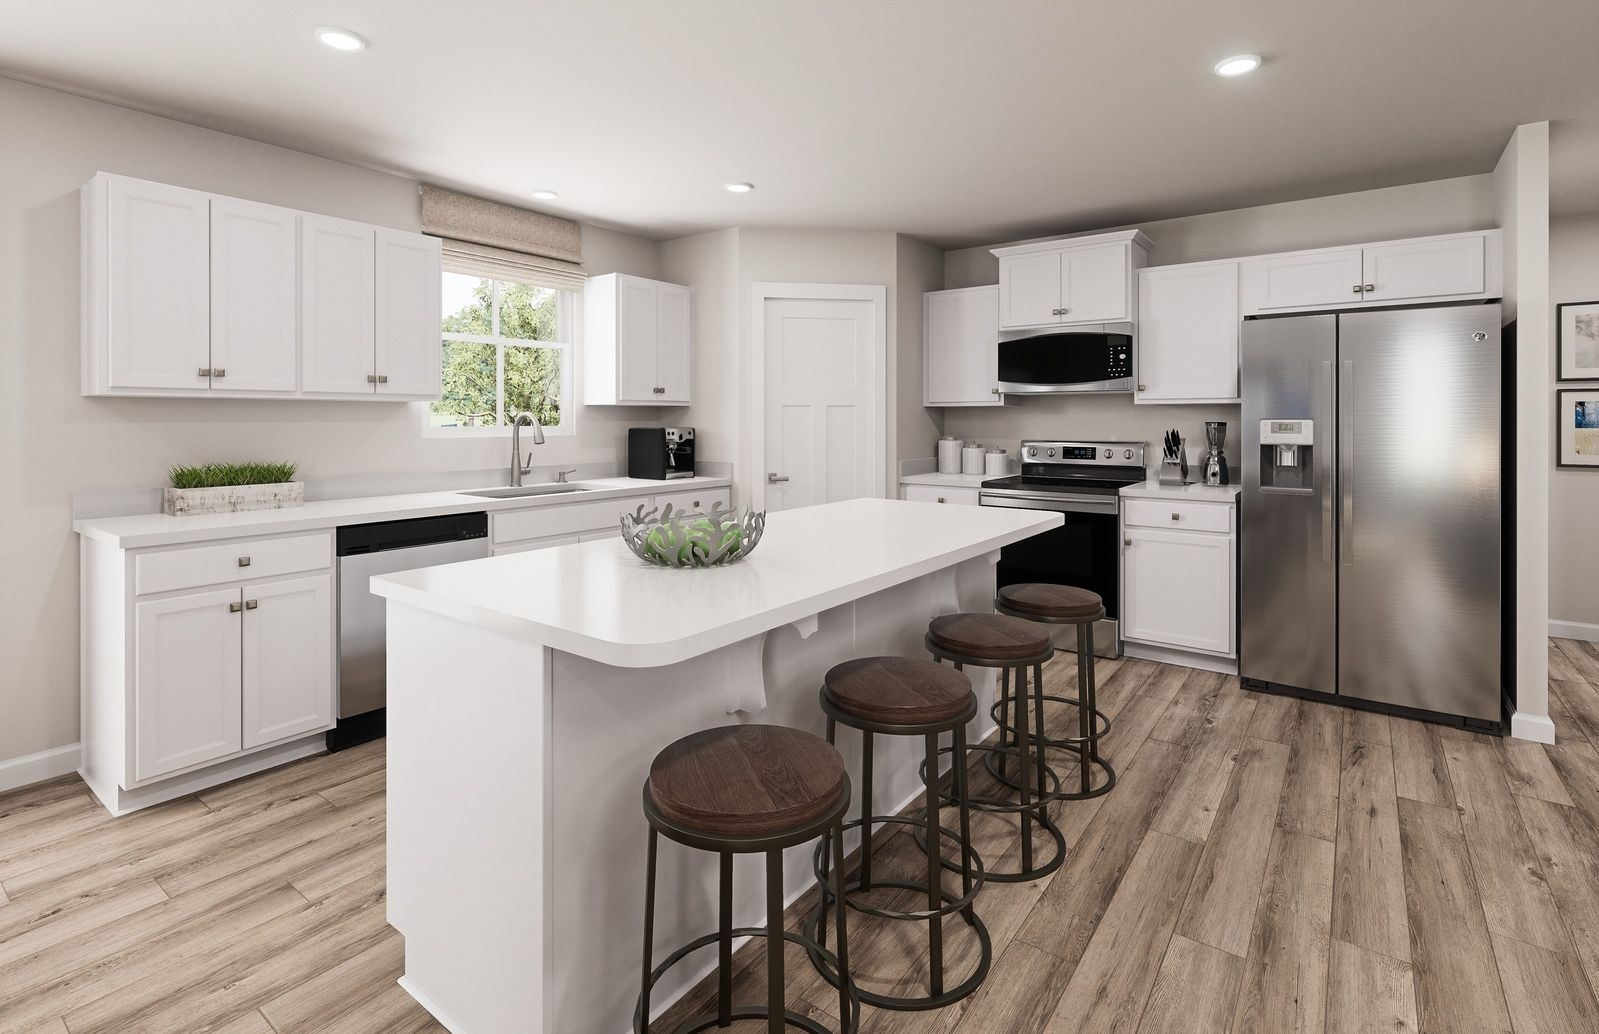 Kitchen featured in the Eden Cay By Ryan Homes in Akron, OH